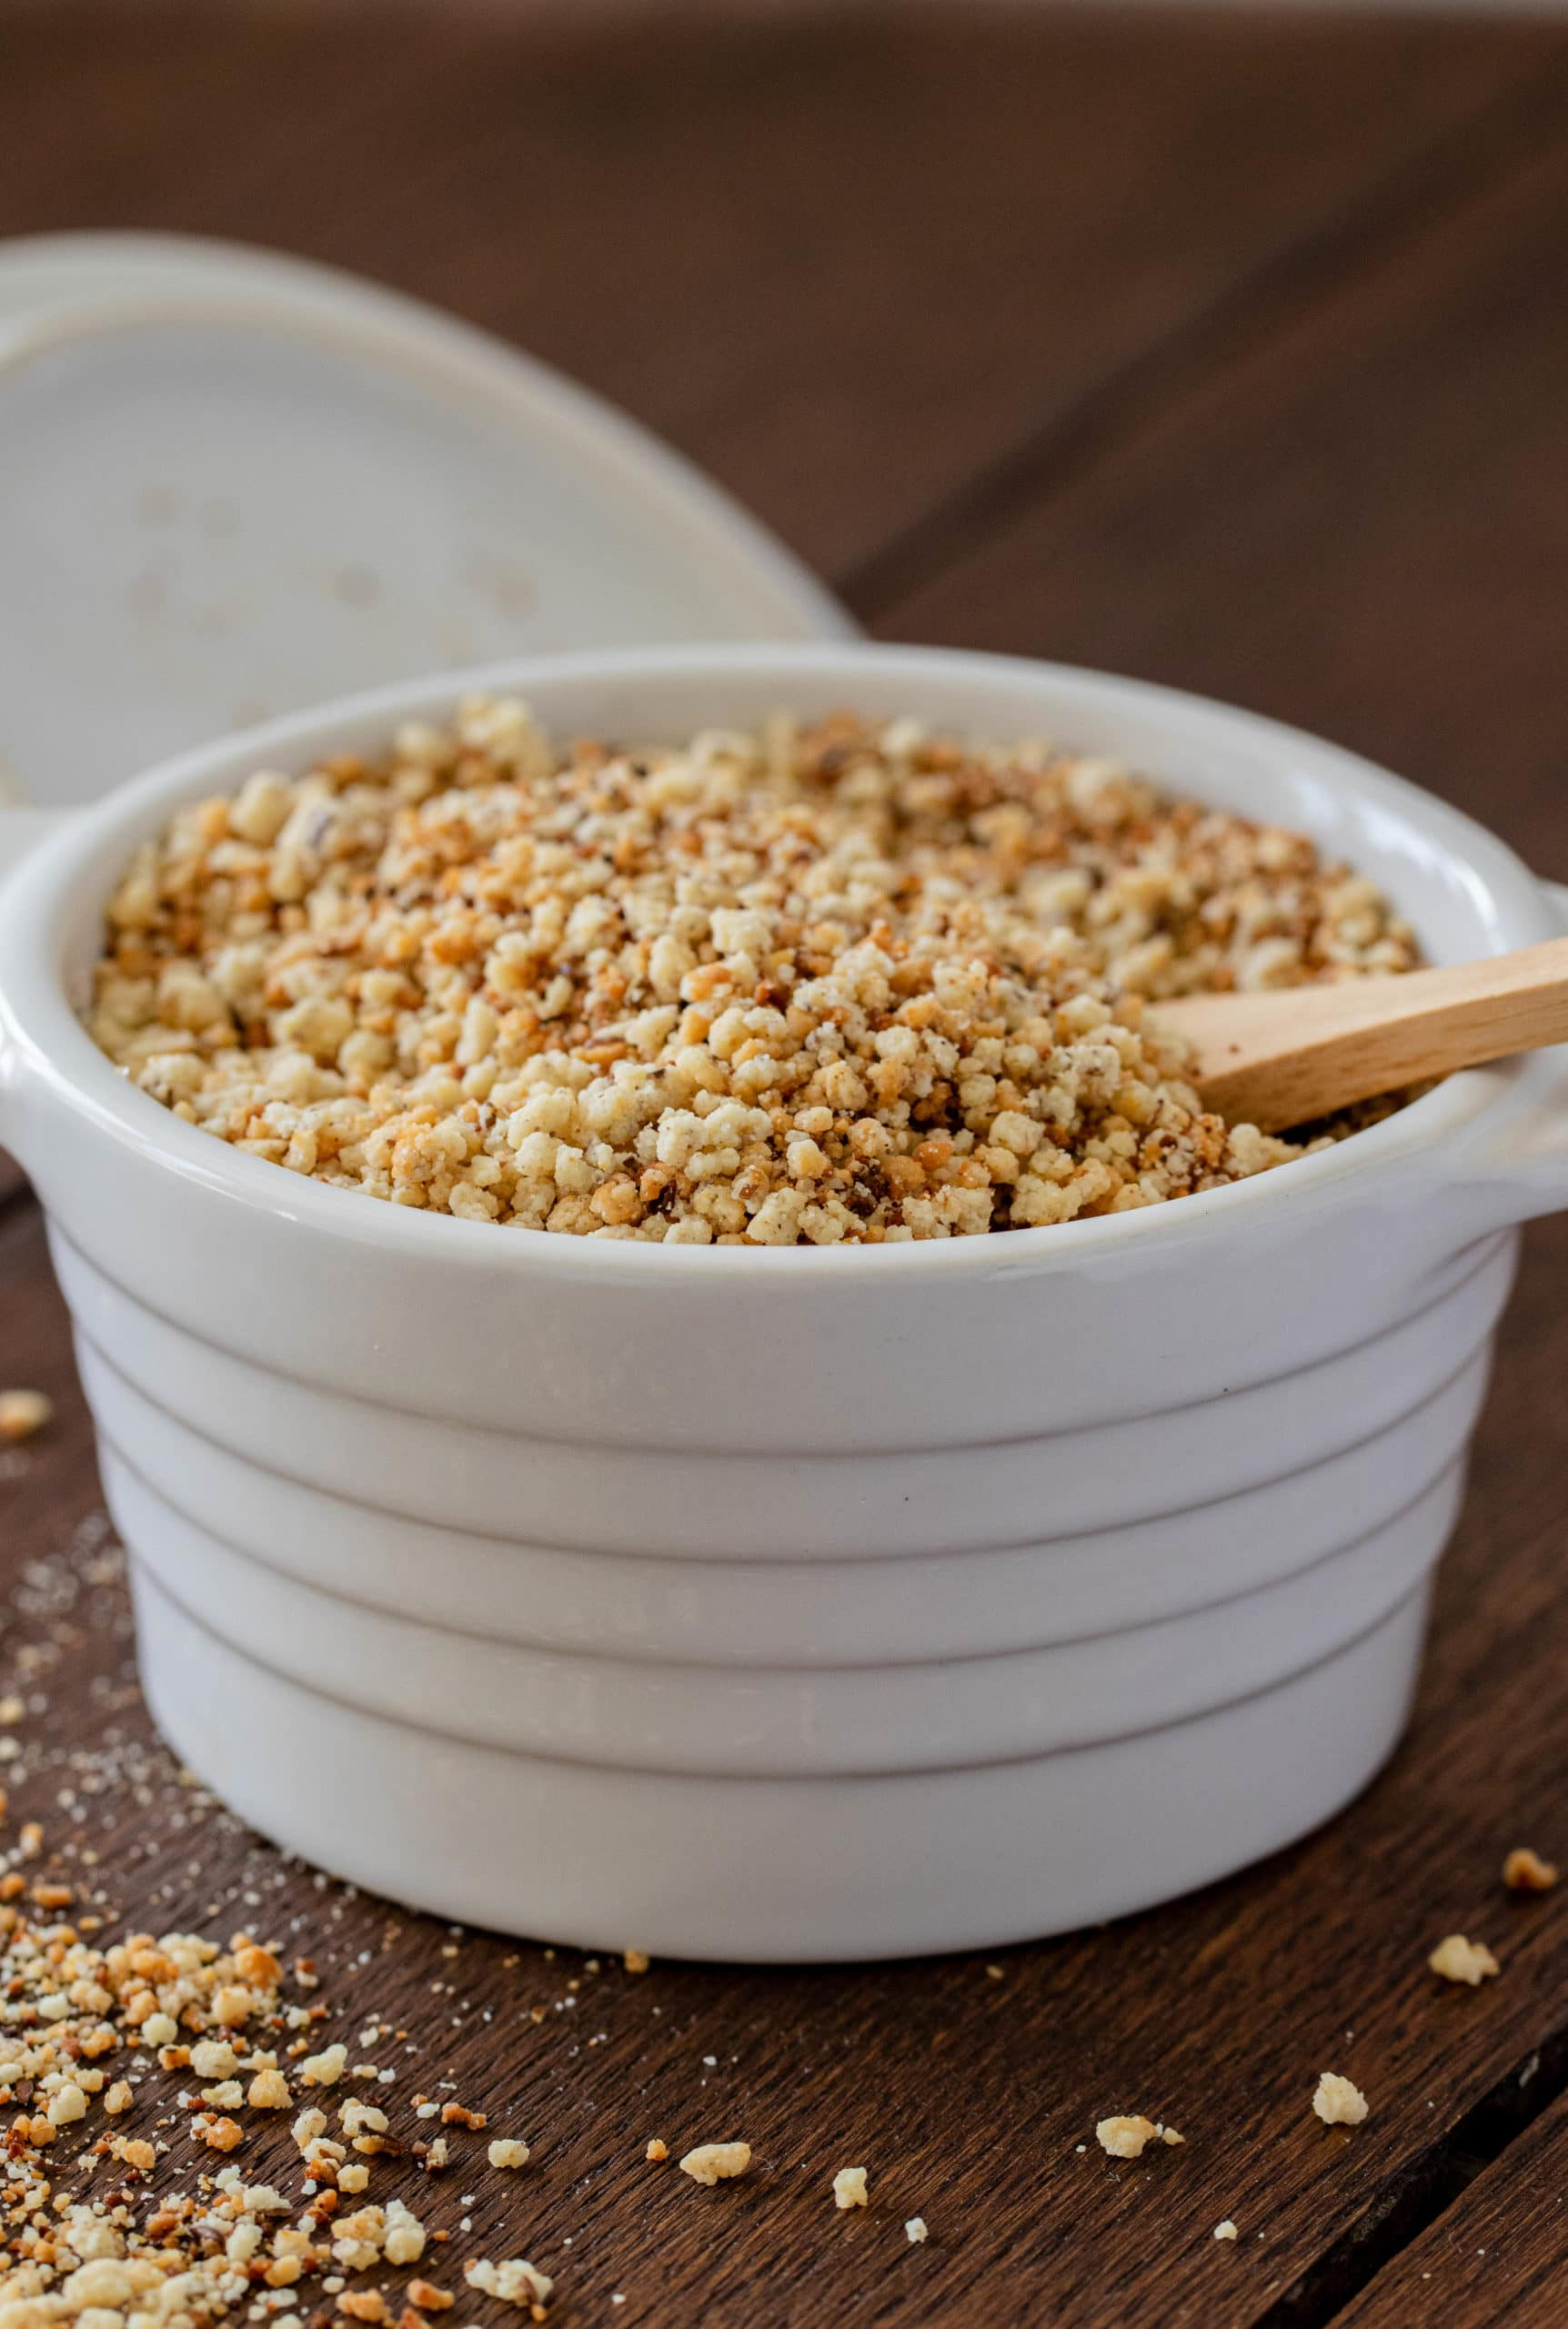 Gluten free bread crumbs made with almond flour.